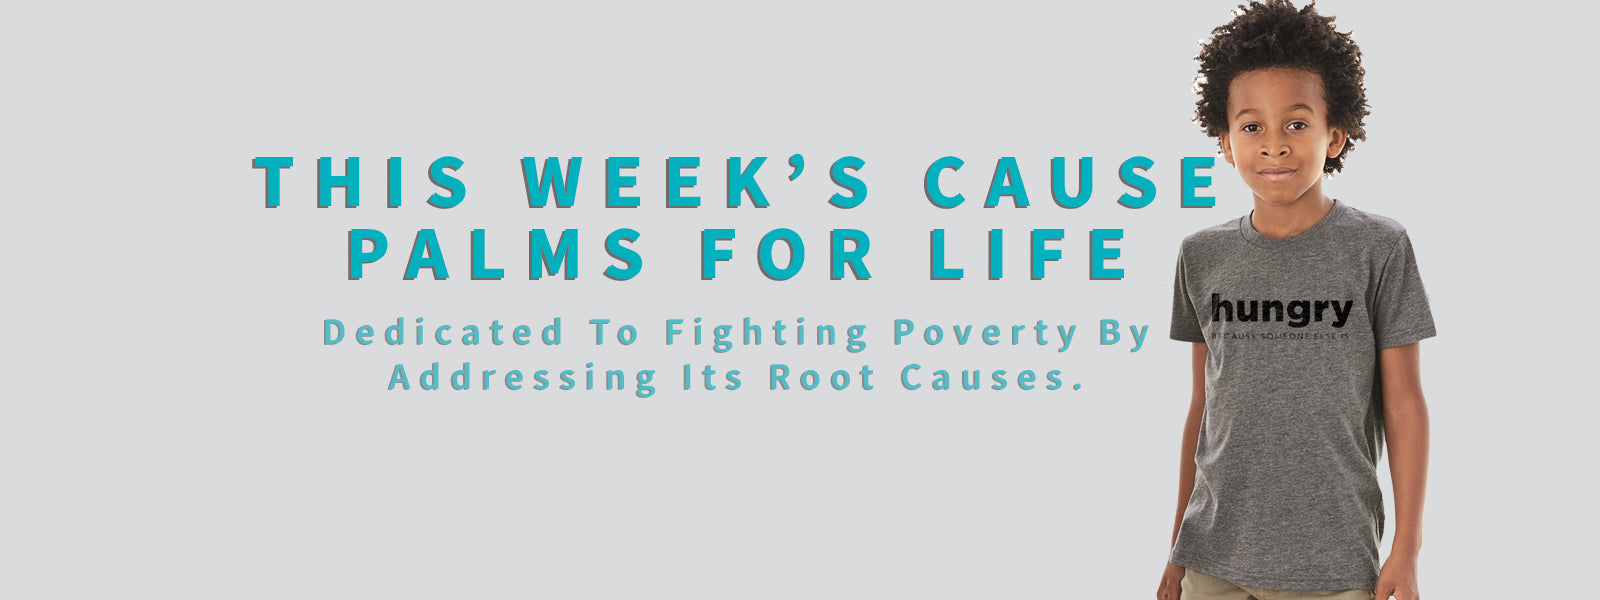 Sevenly.org Weekly Cause Partner Palms For Life Fund - dedicated to fighting poverty by addressing its root causes